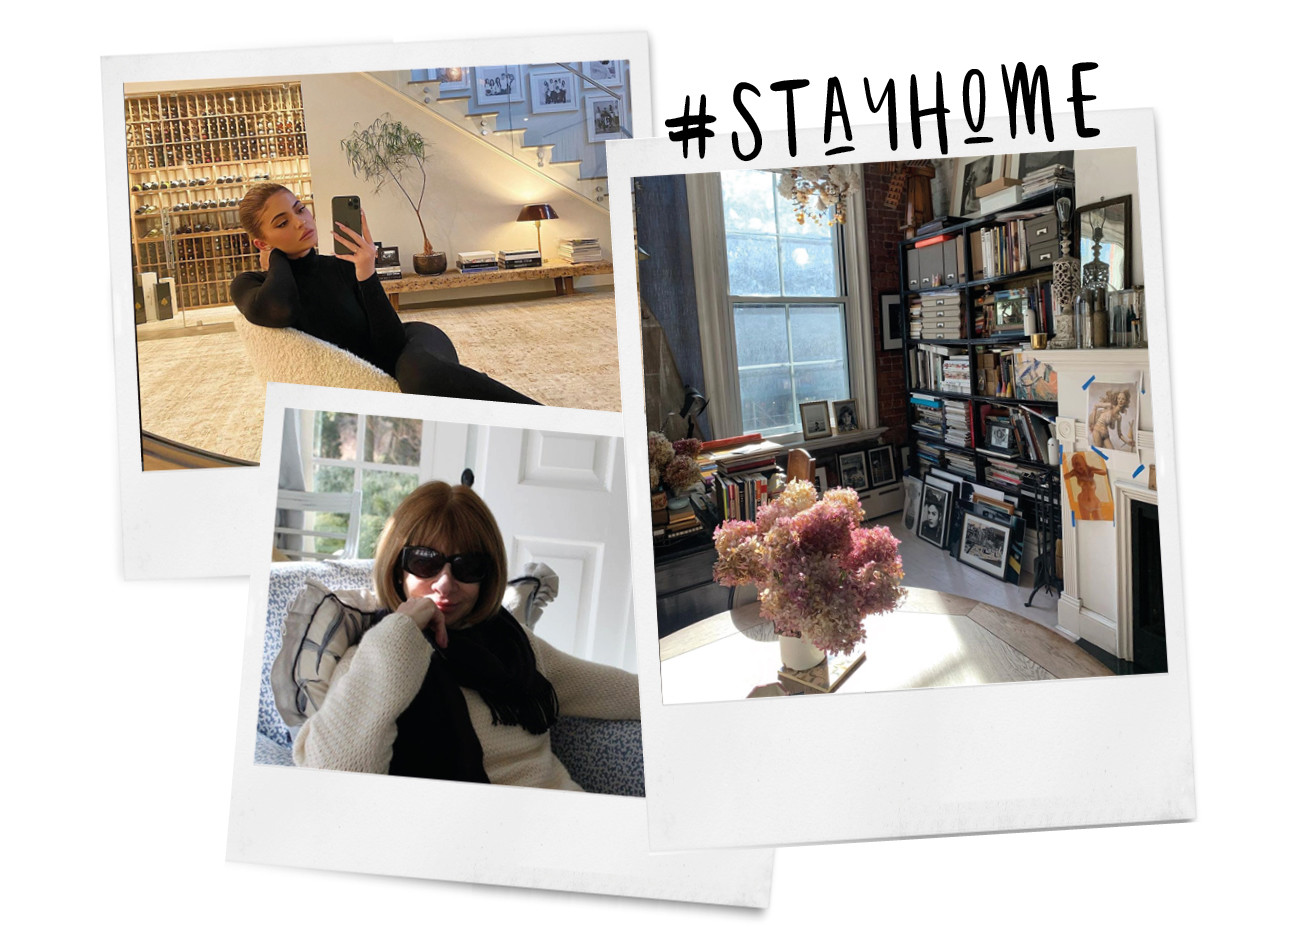 Stay home Kylie jenner Anna wintour